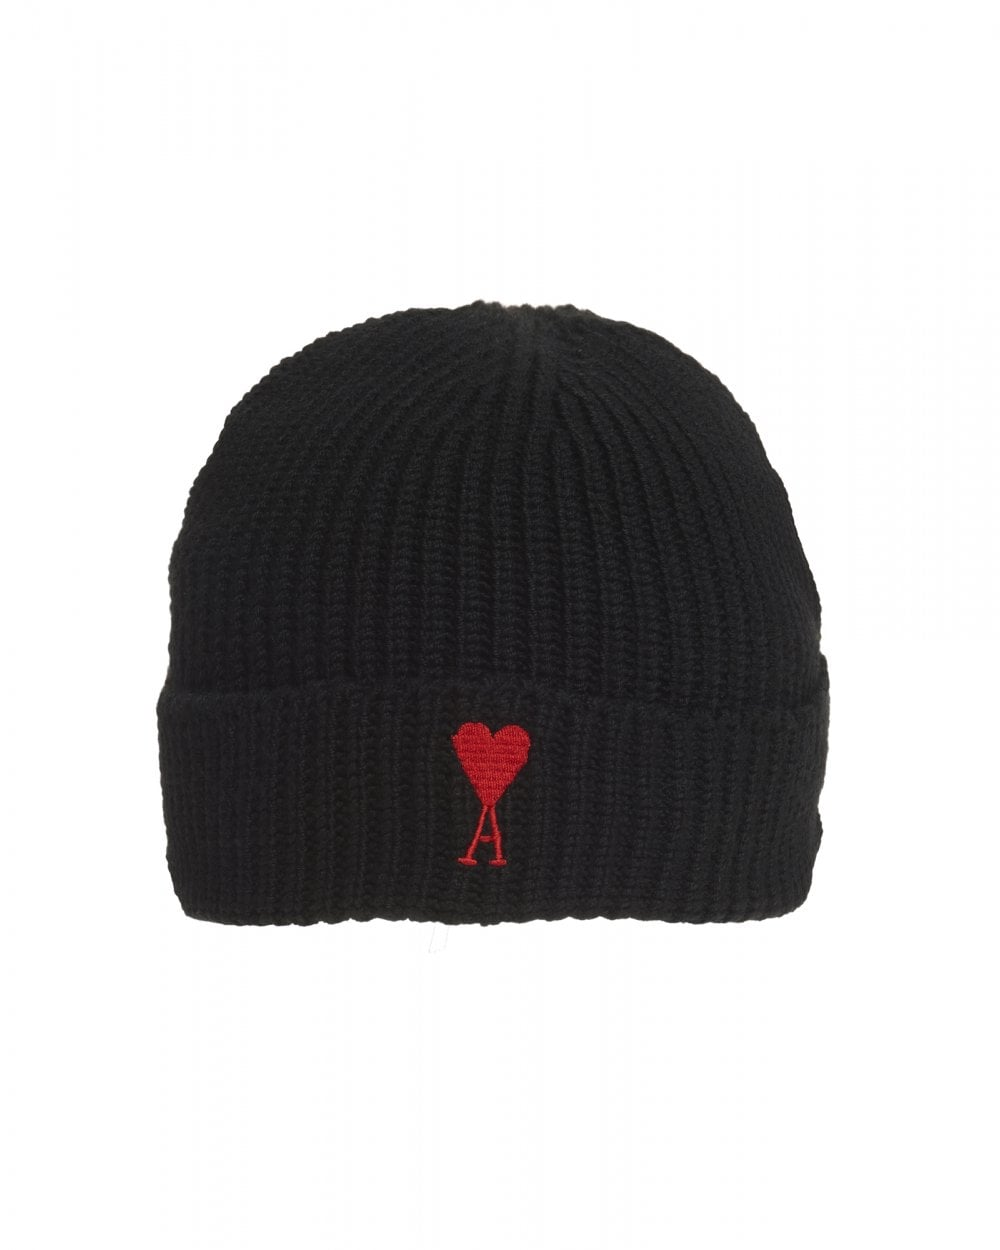 Ami Mens Heart Embroidered Beanie 845b1a648b8